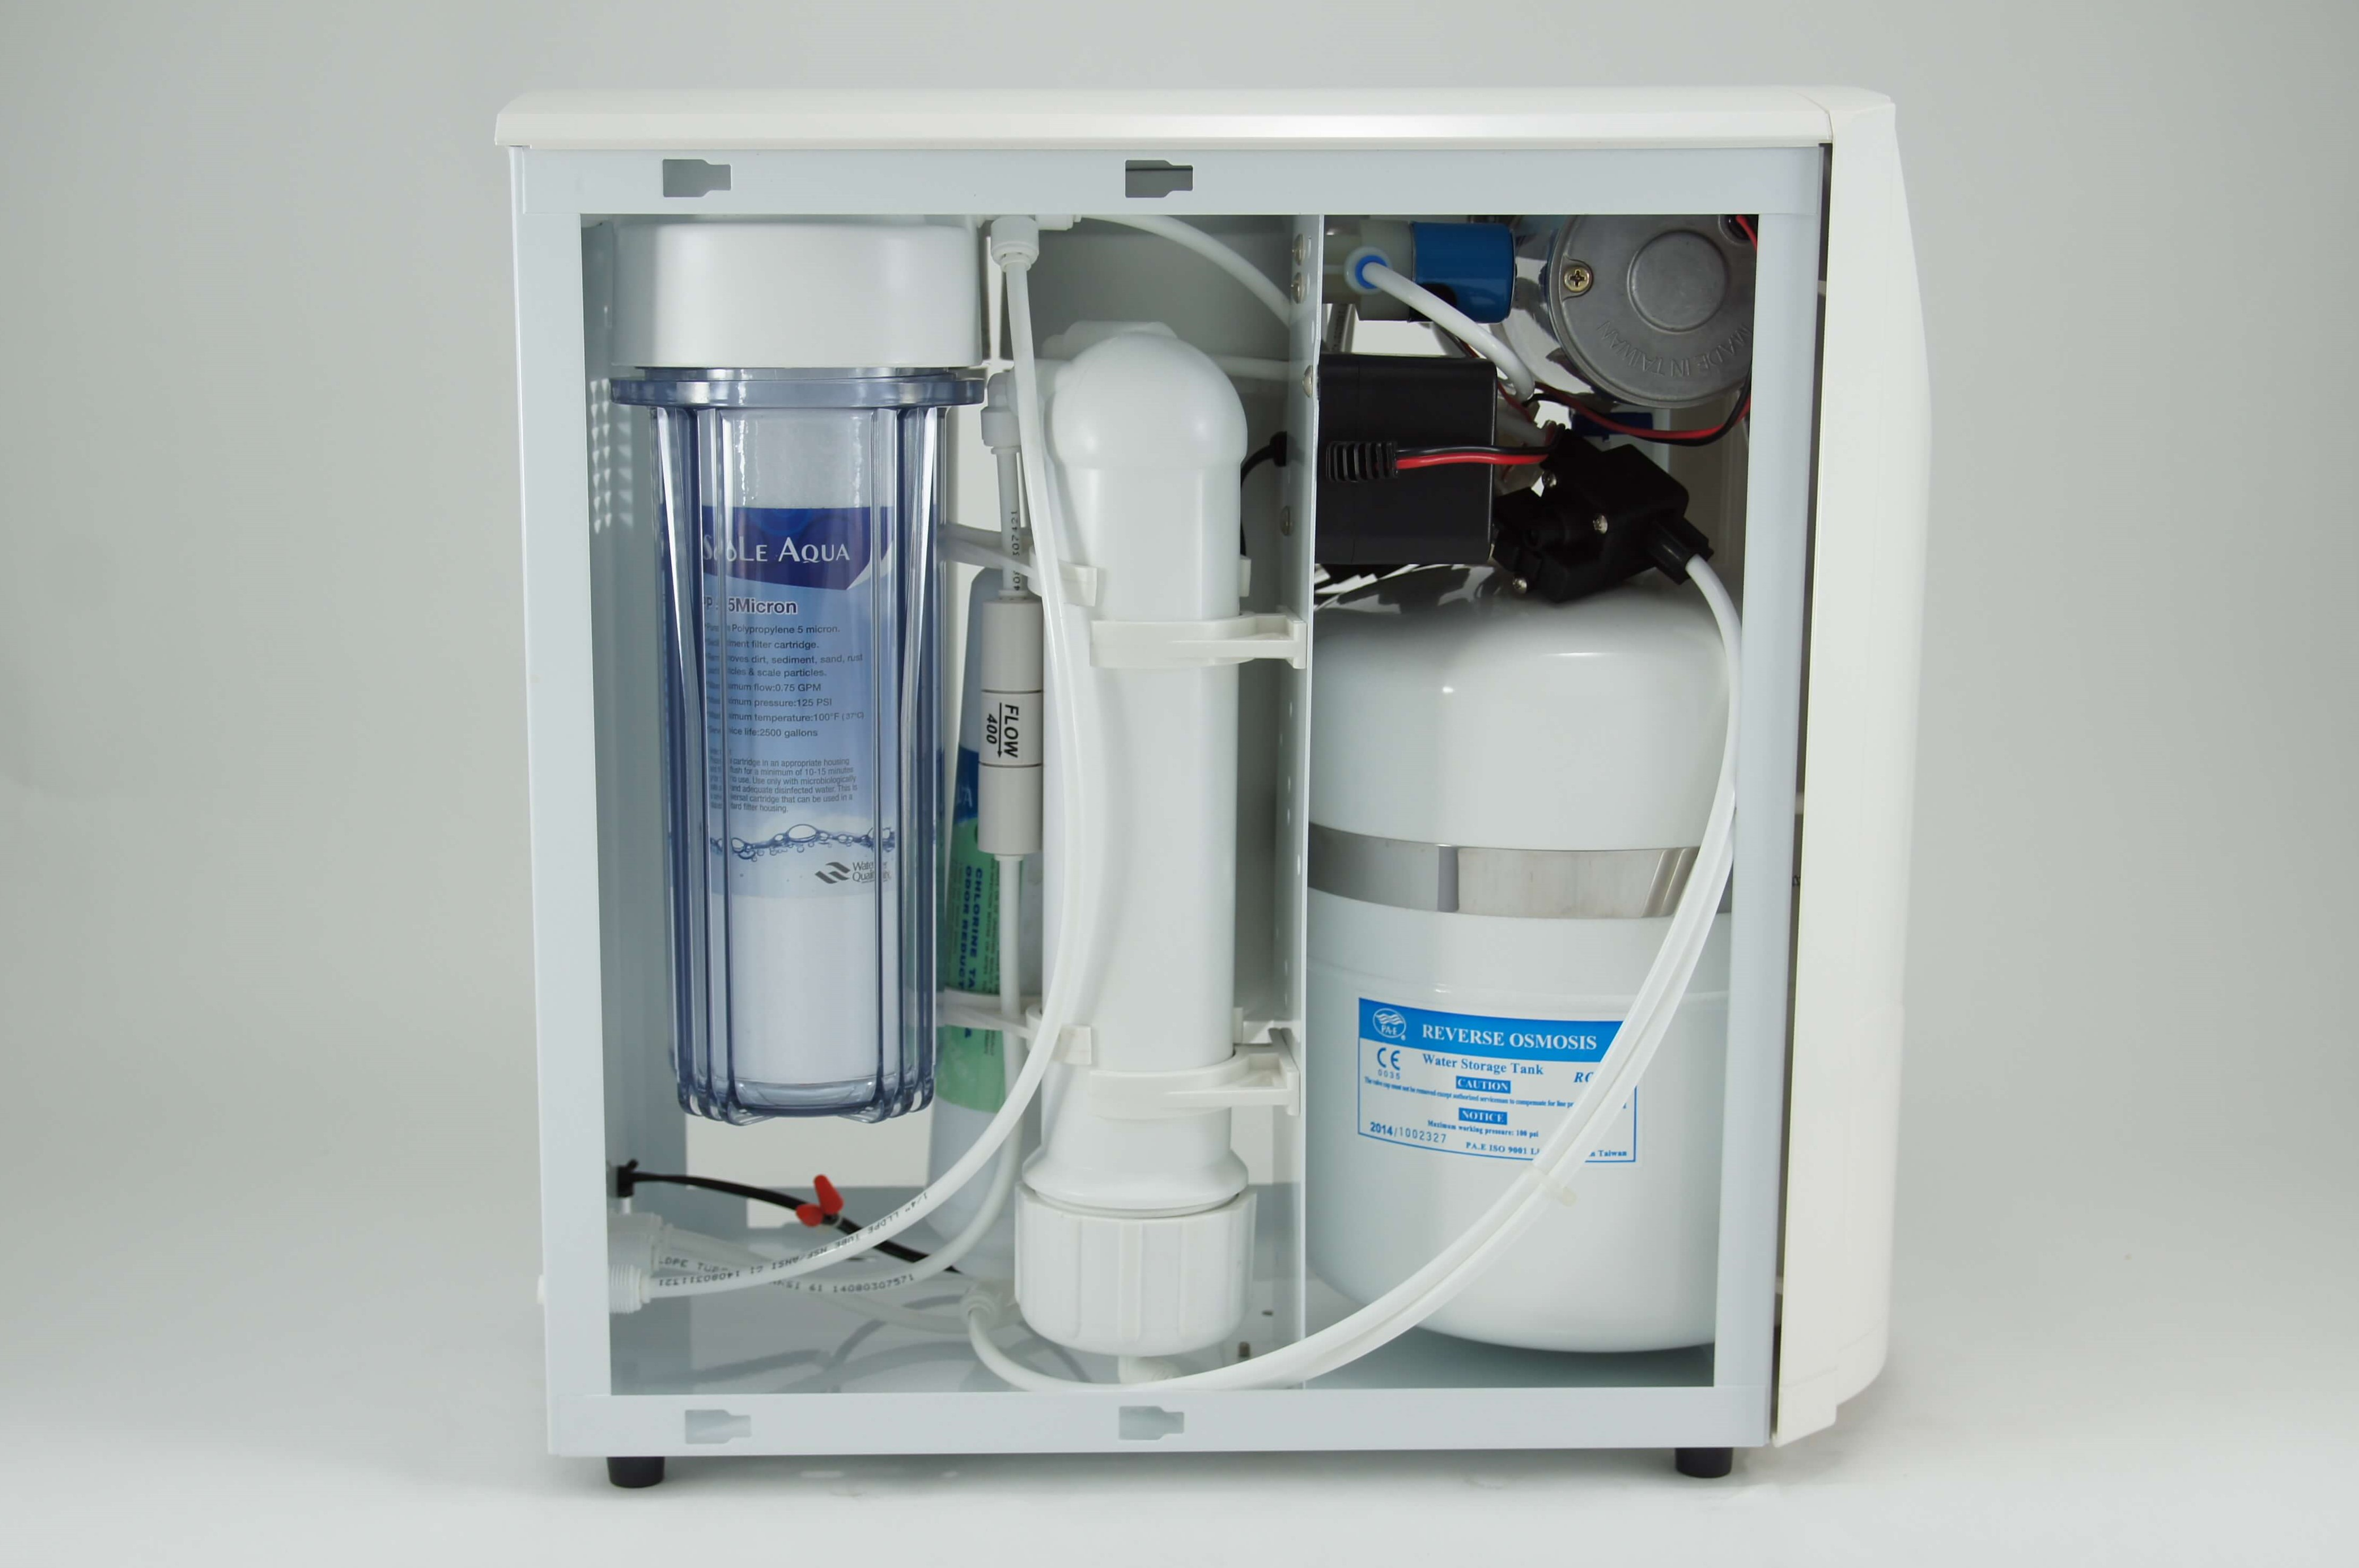 Taiwan Ce Compact Ro Under Sink Reverse Osmosis Drinking Water Nano Filter 10in 5 Mikron System